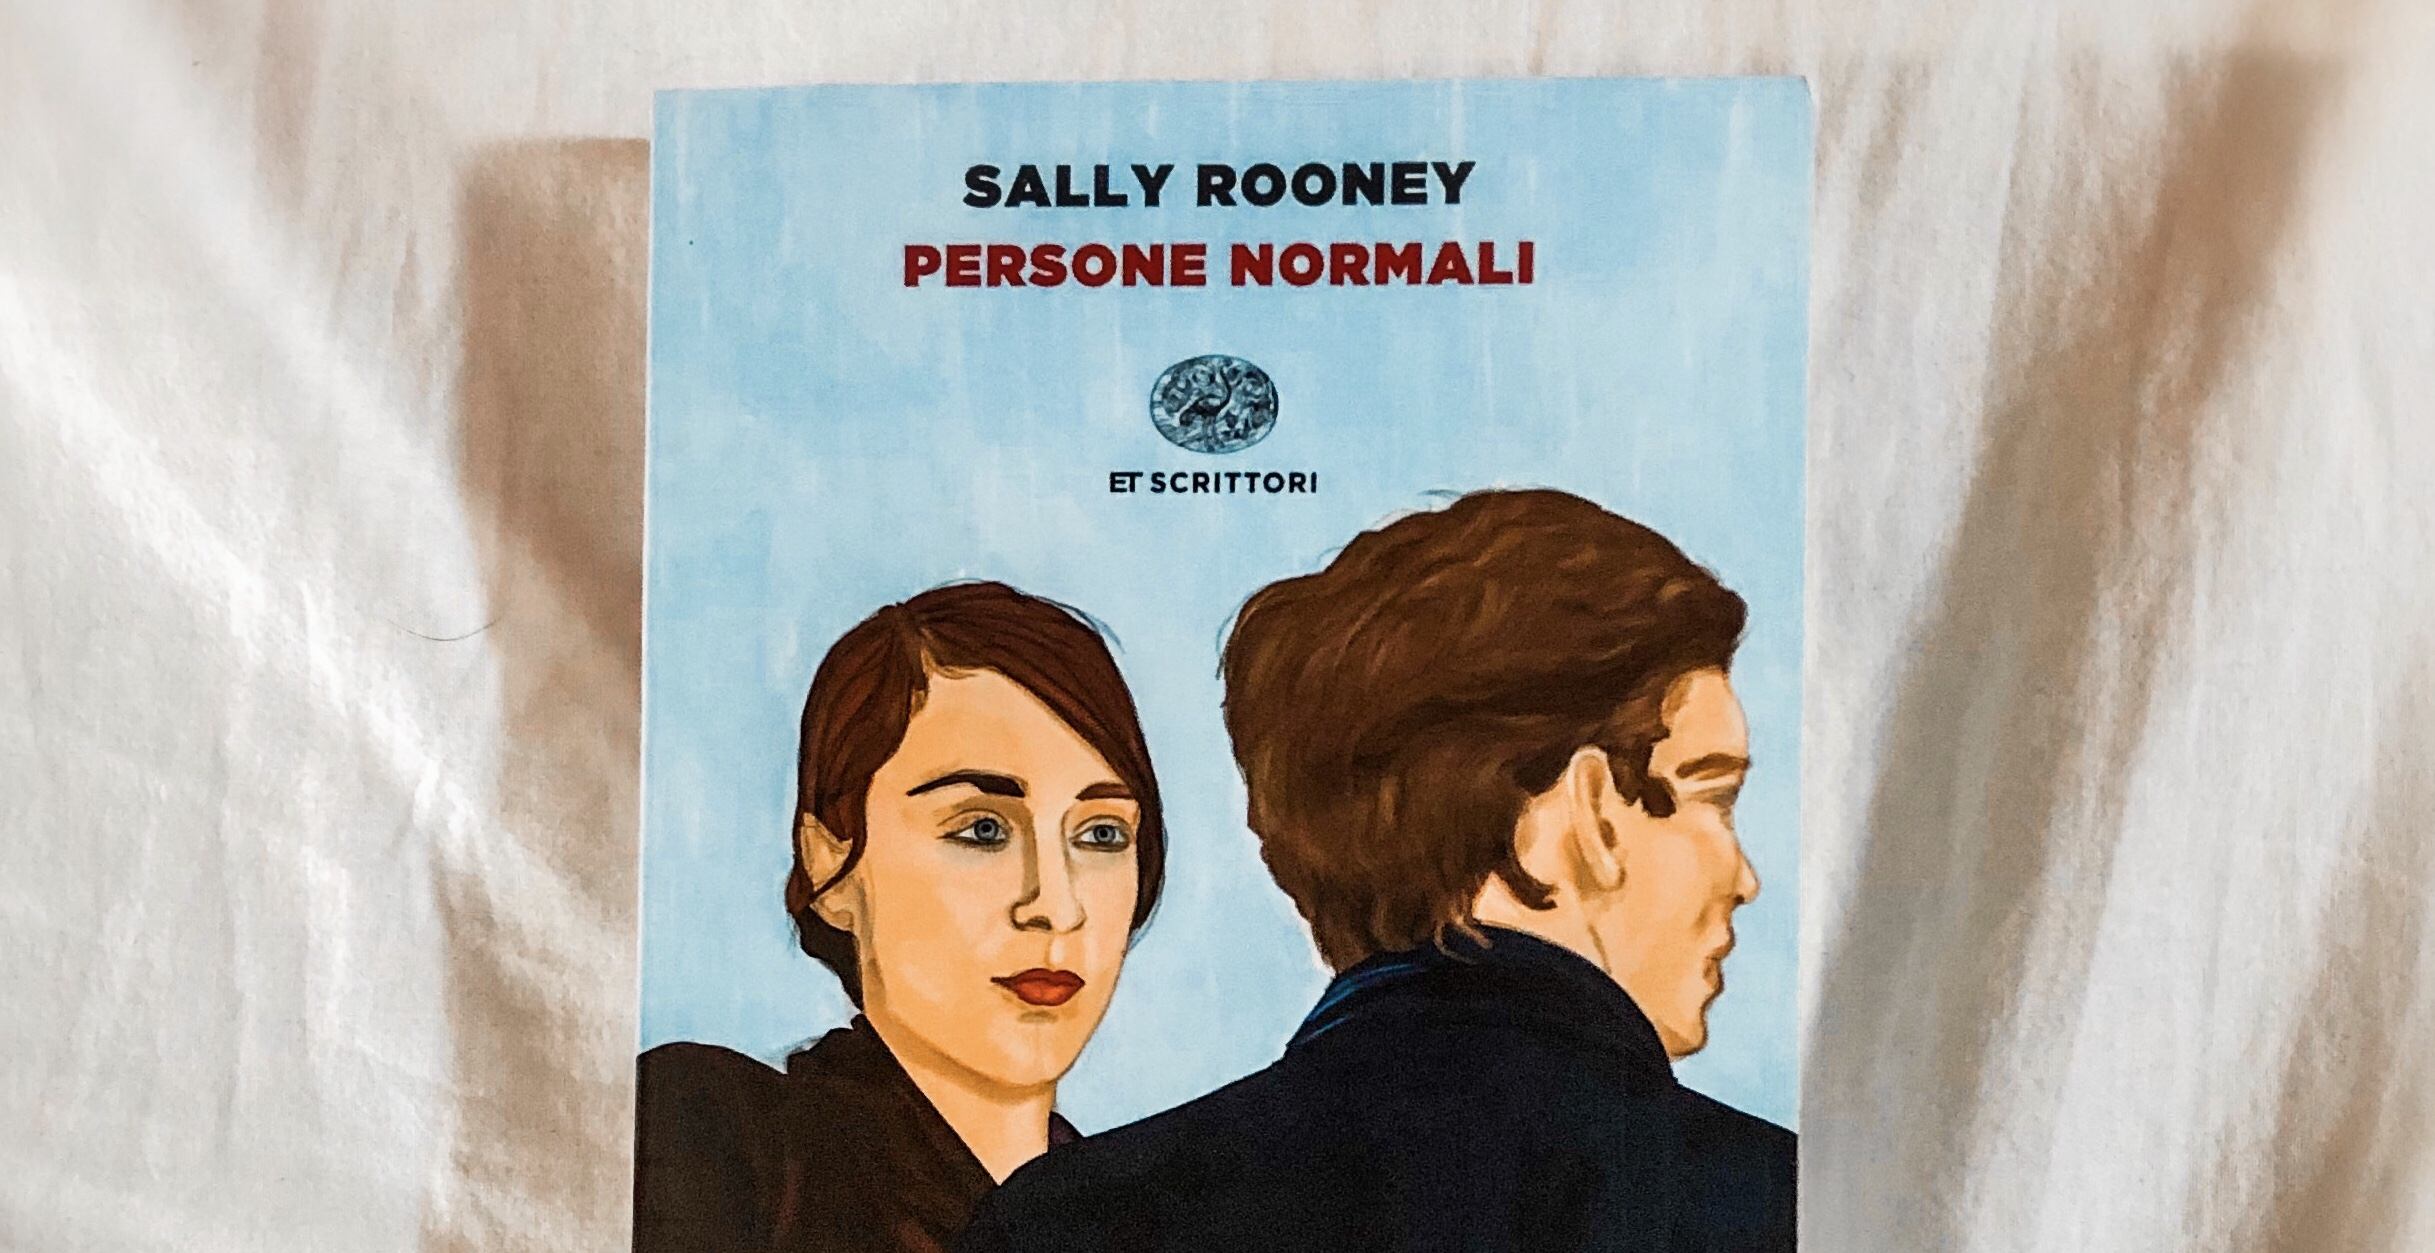 persone normali sally rooney